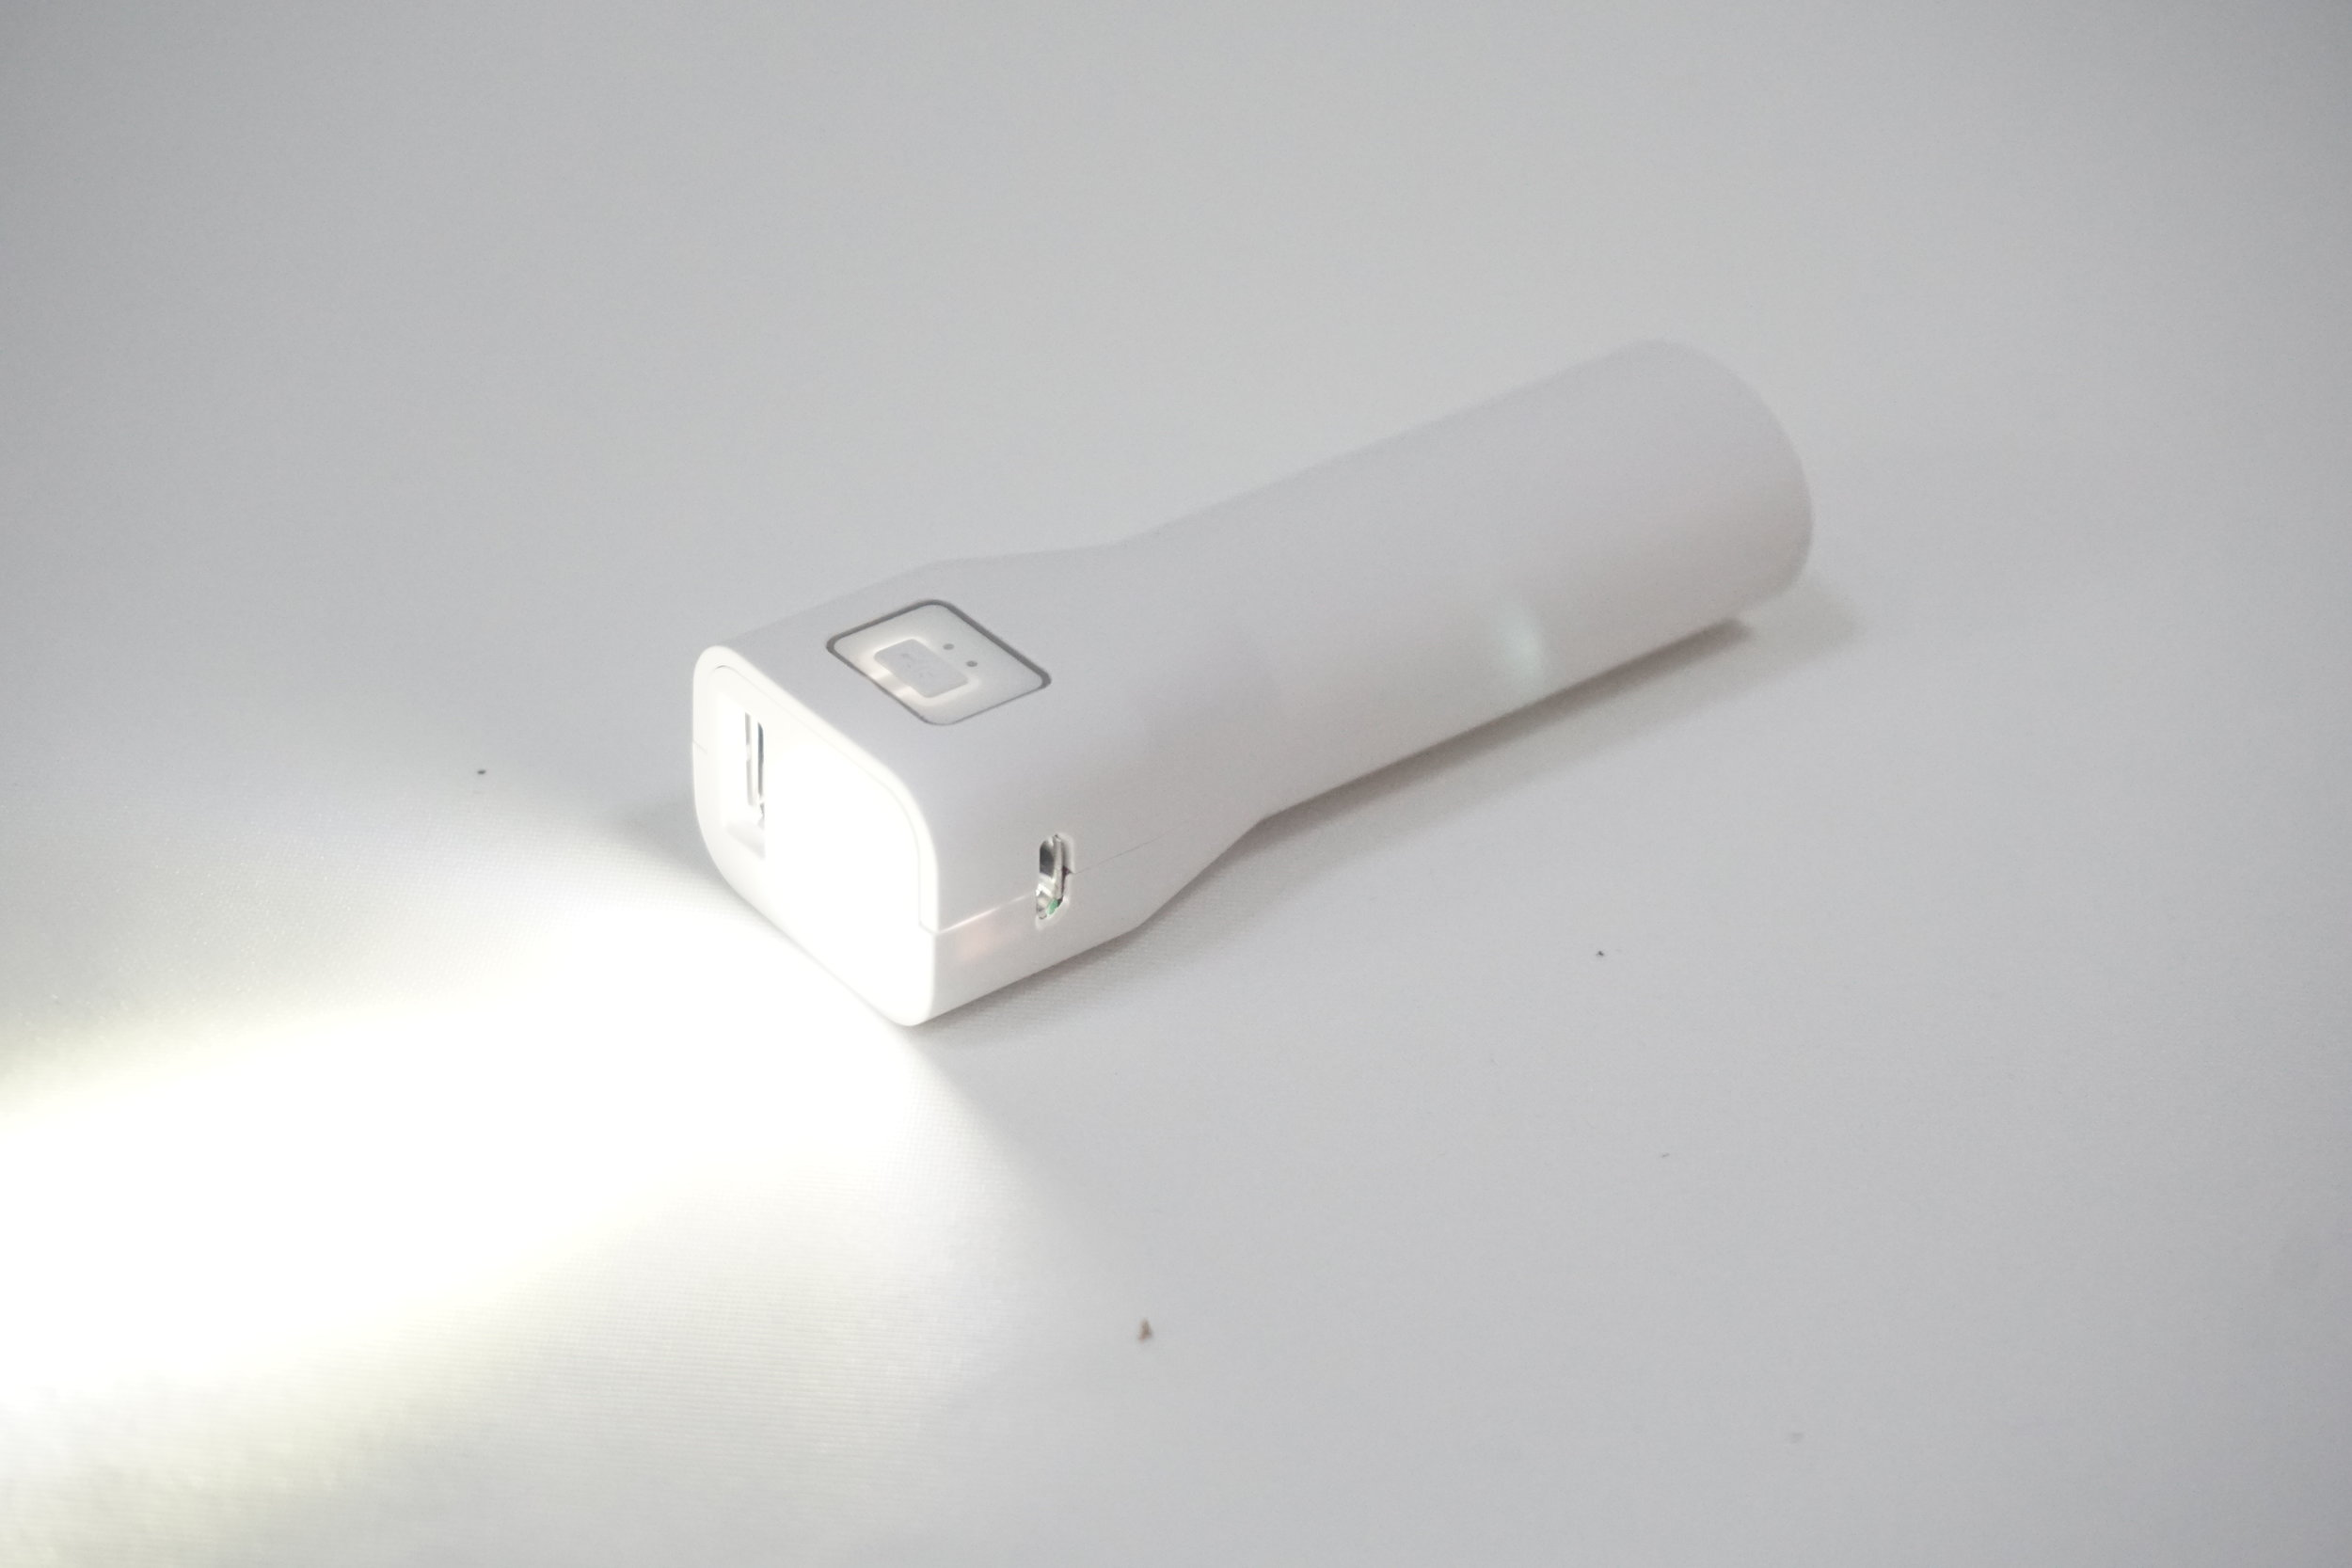 PB-165 2000 mah Powerbank with Flashlight and Cable (2).JPG